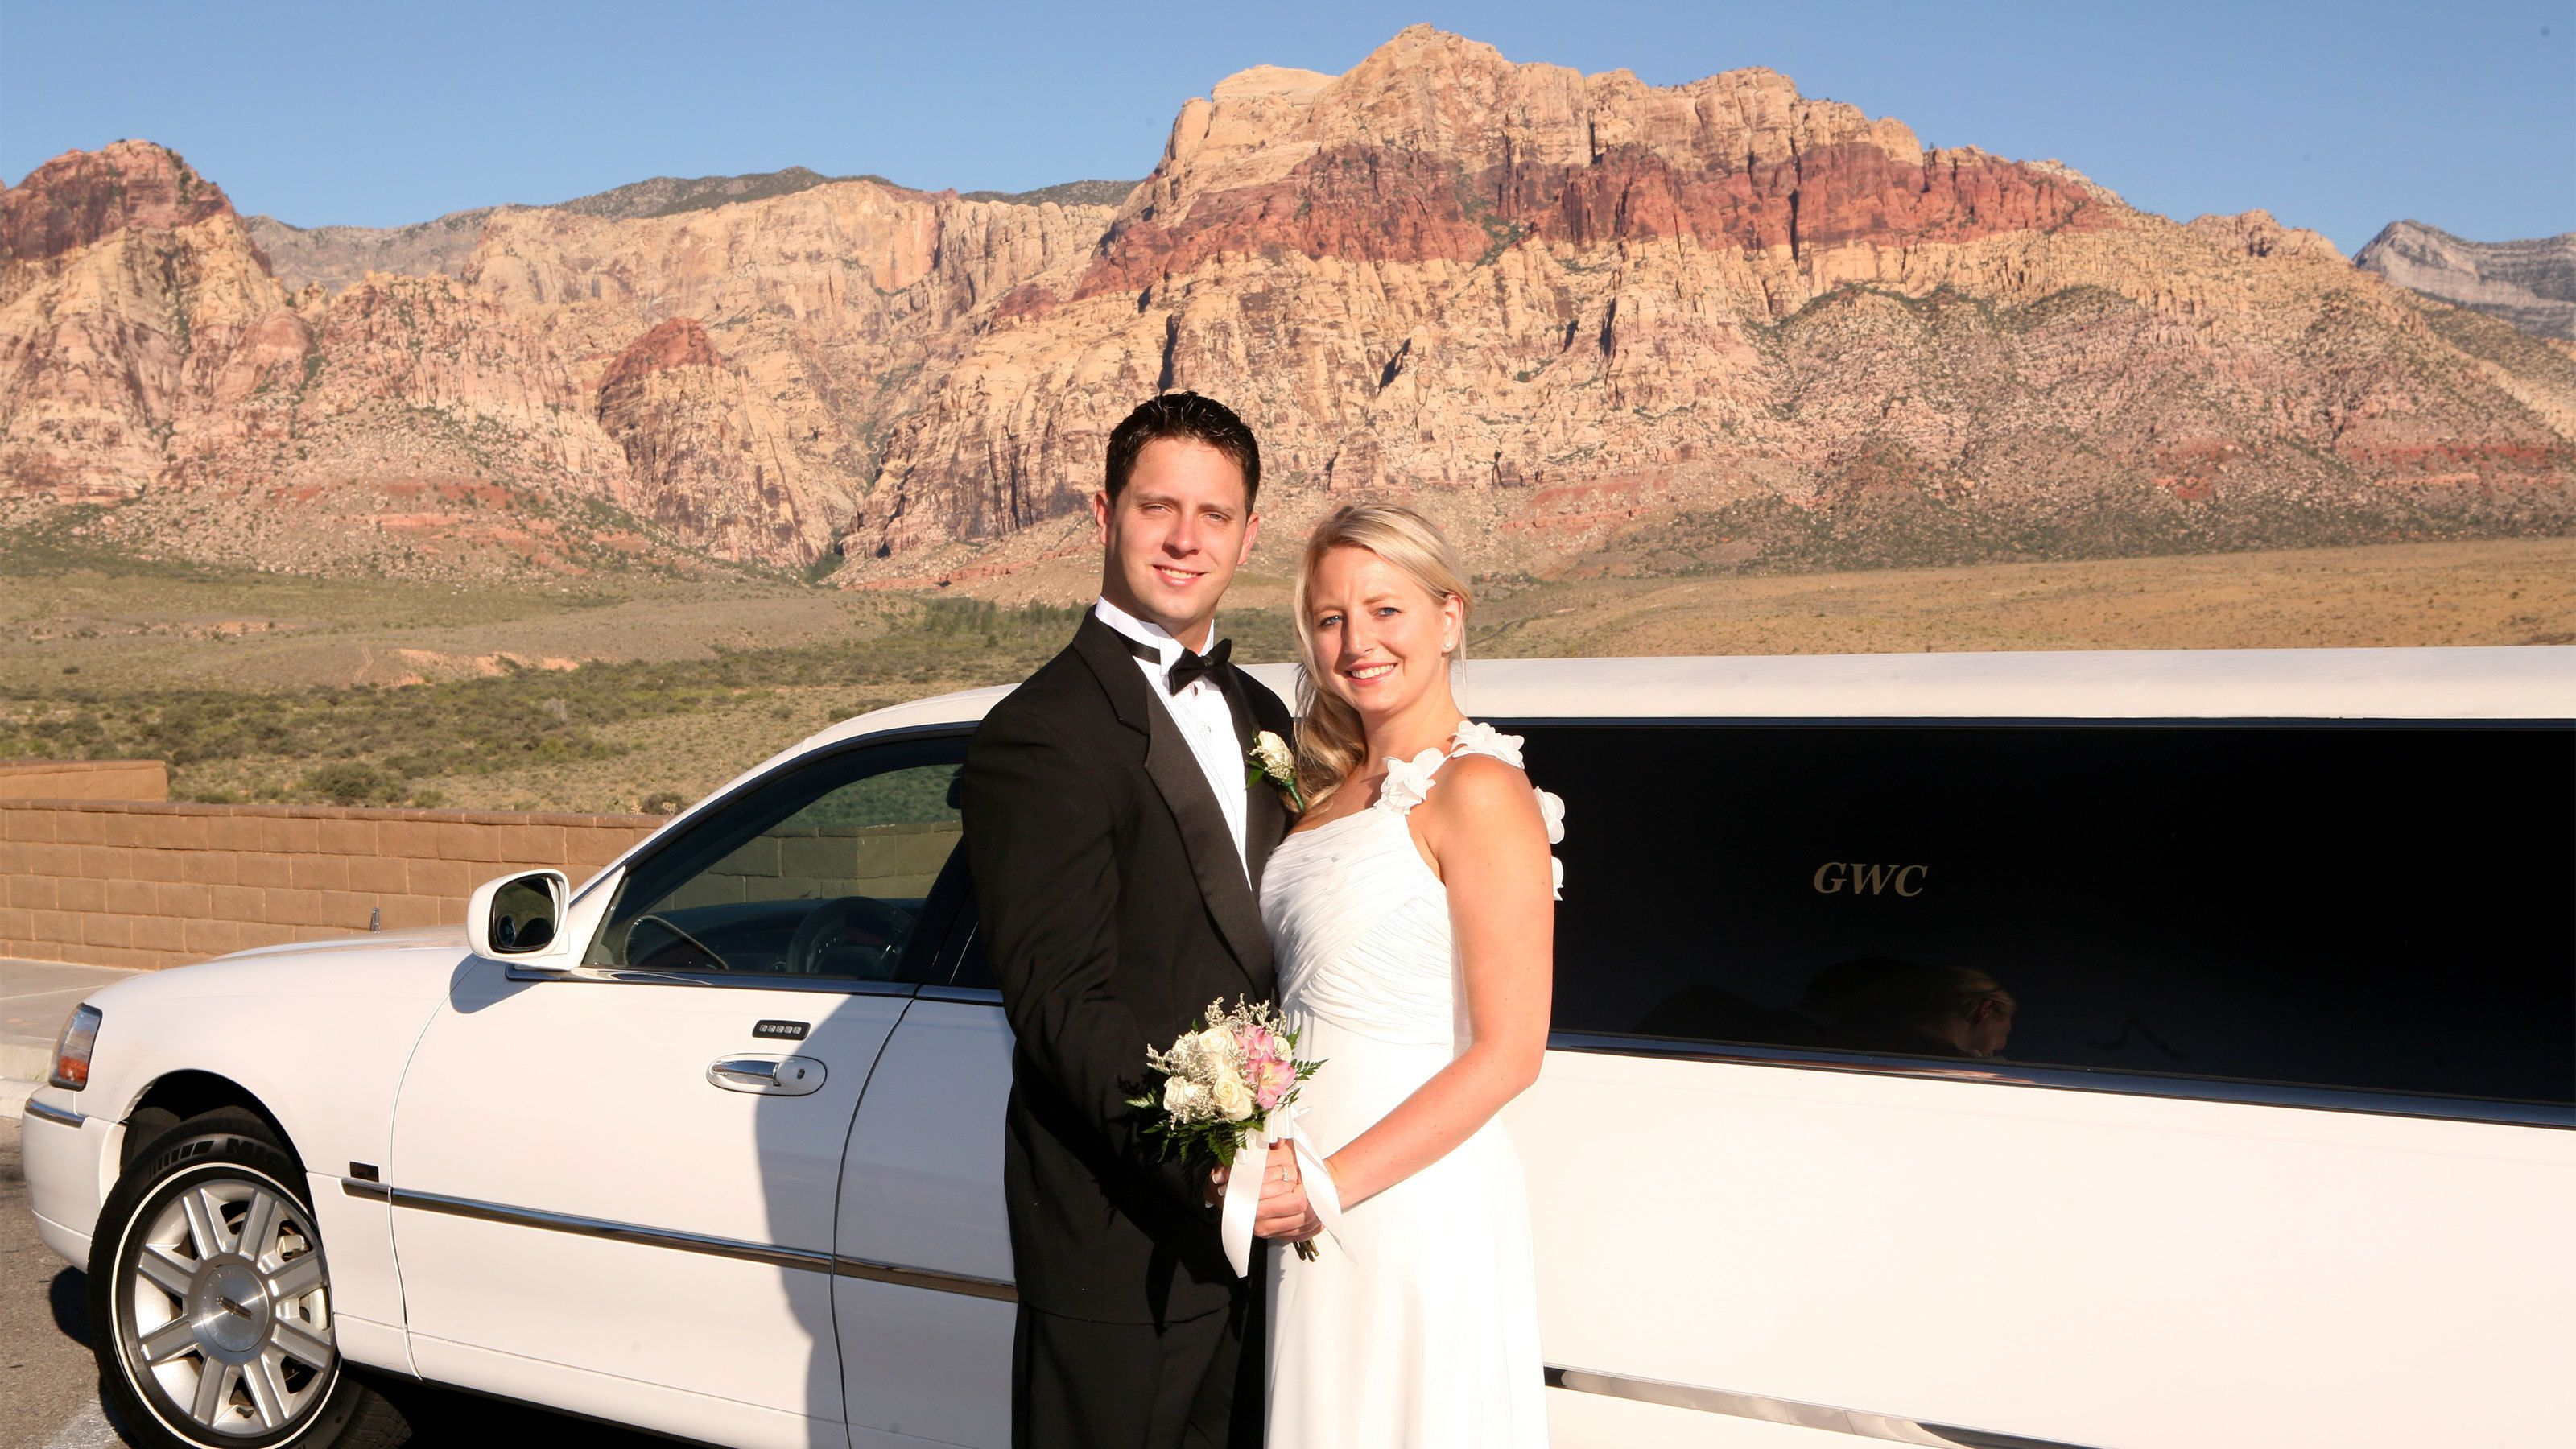 Happy bride and groom pose for a quick photo next to their limousine with the Red Rock